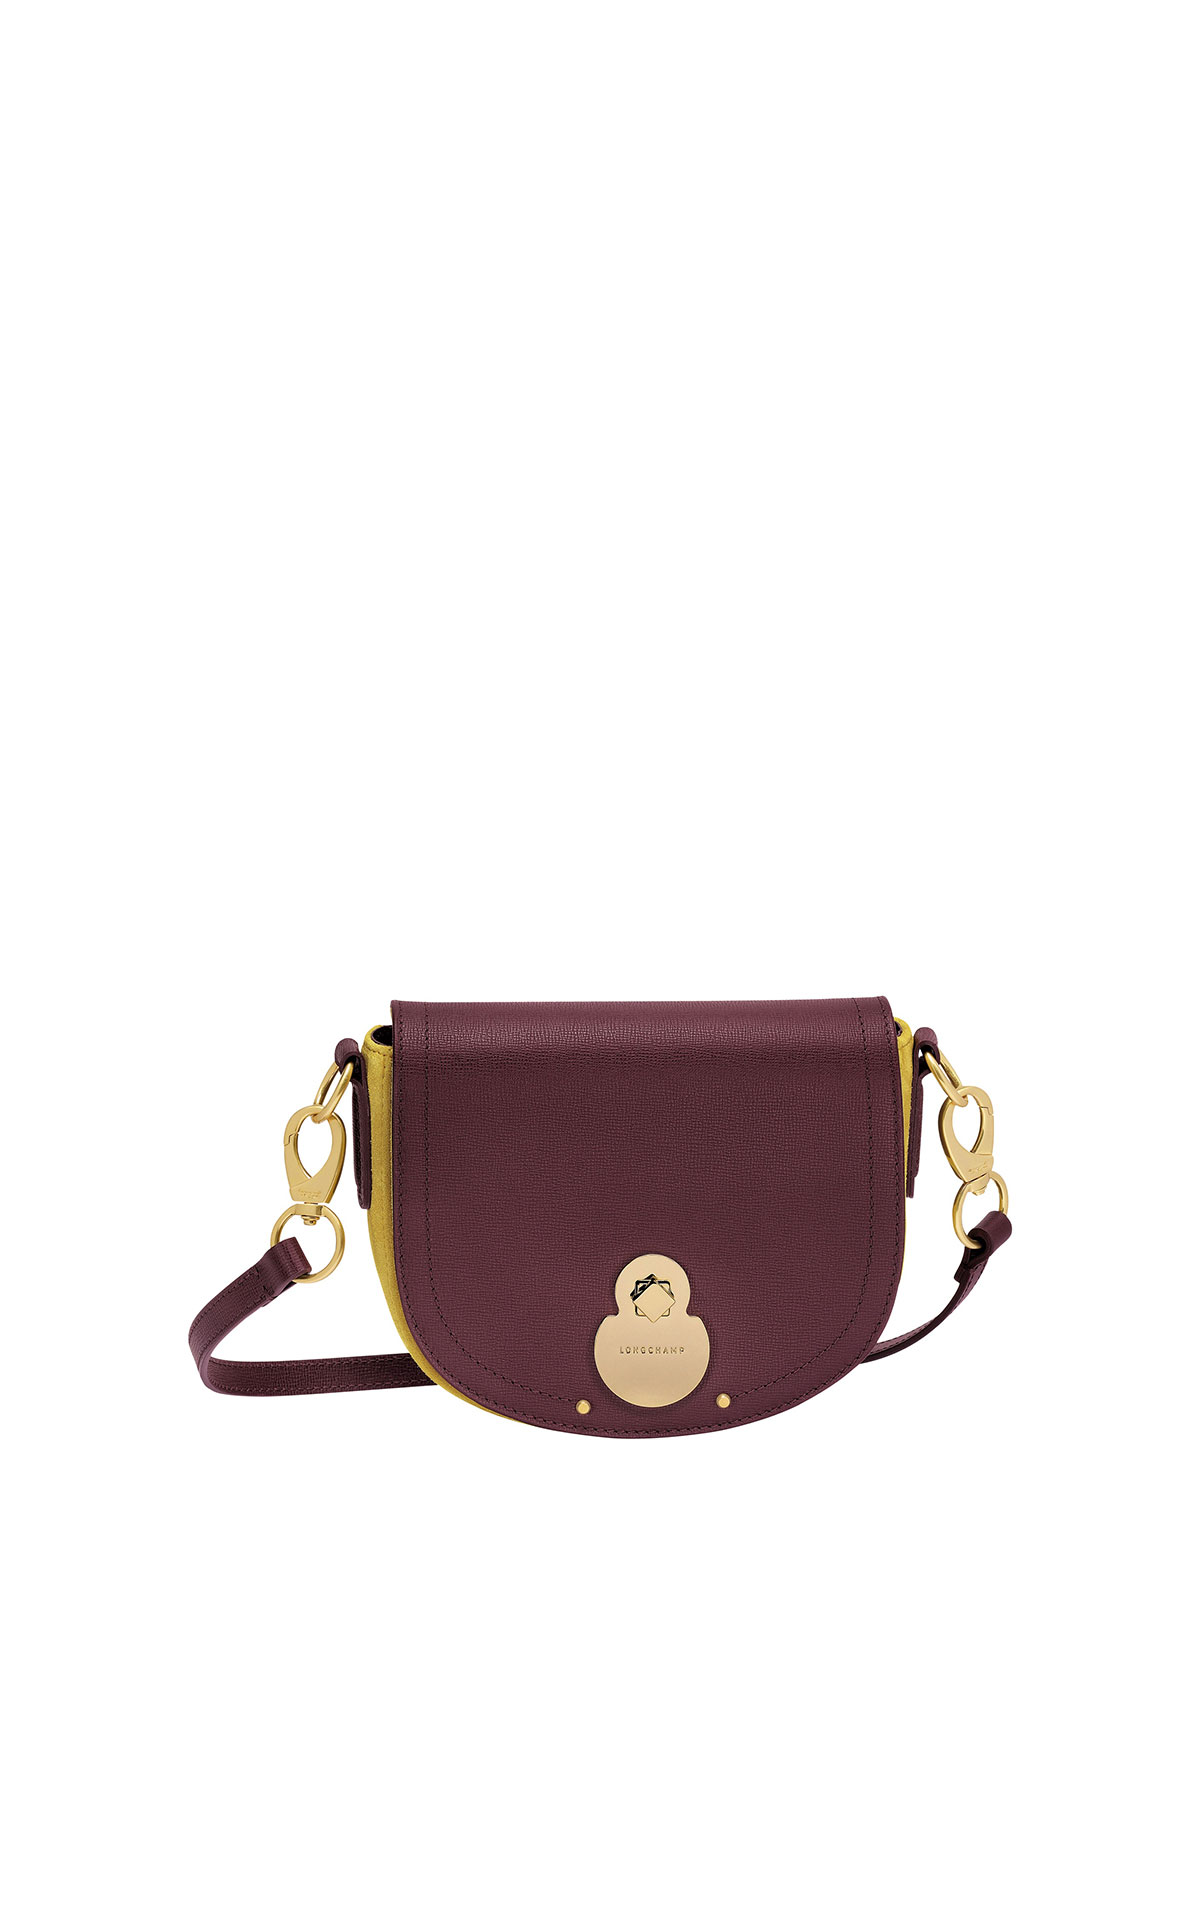 Longchamp Cavalcade small leather and suede crossbody bag in brandy and Neon  from Bicester Village